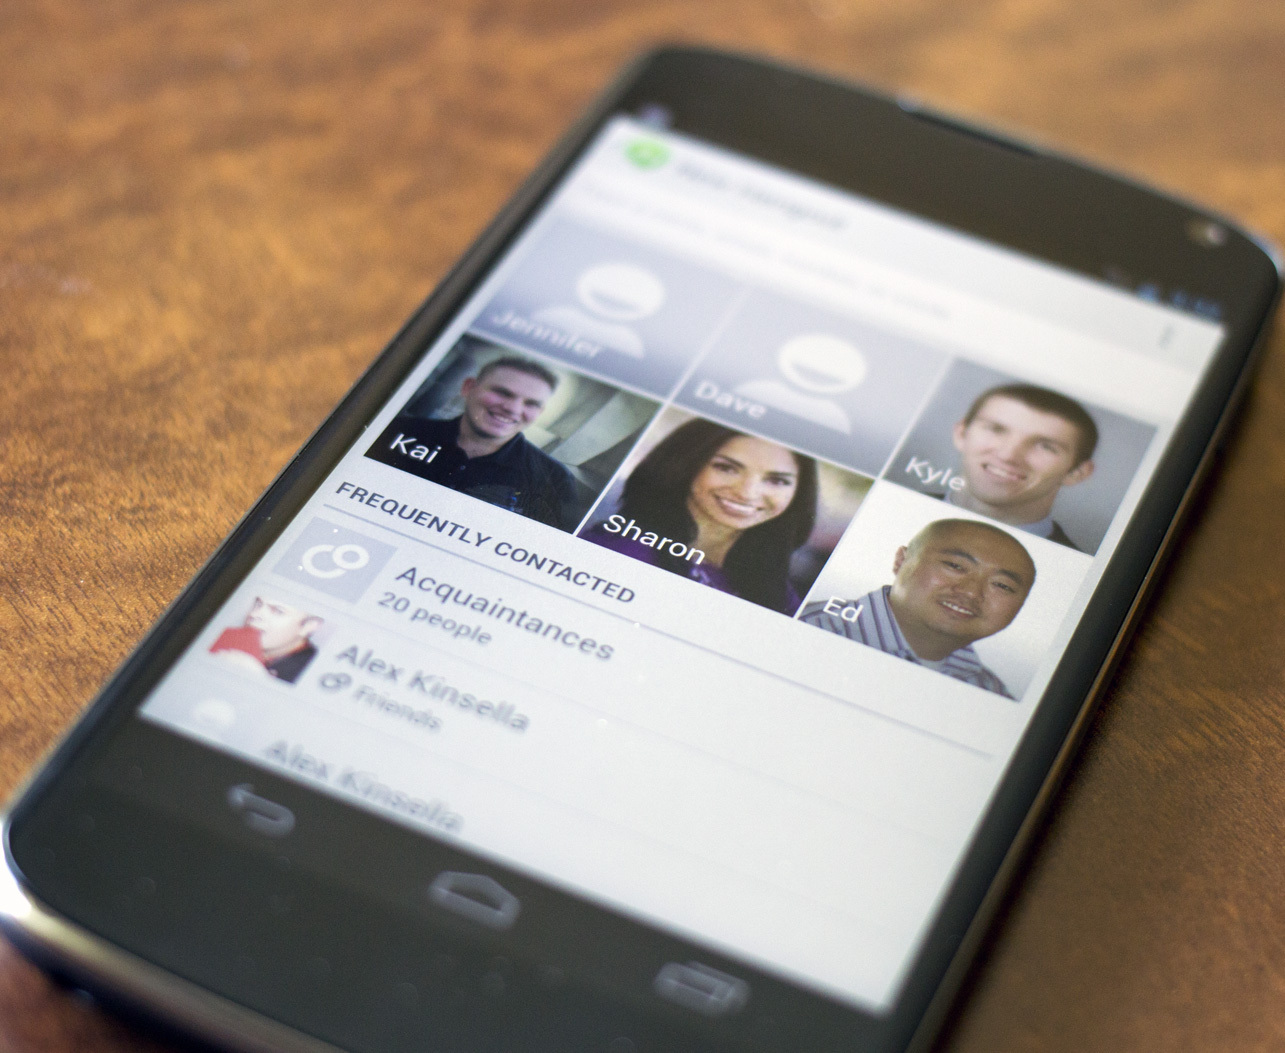 Google adds Hangouts feature